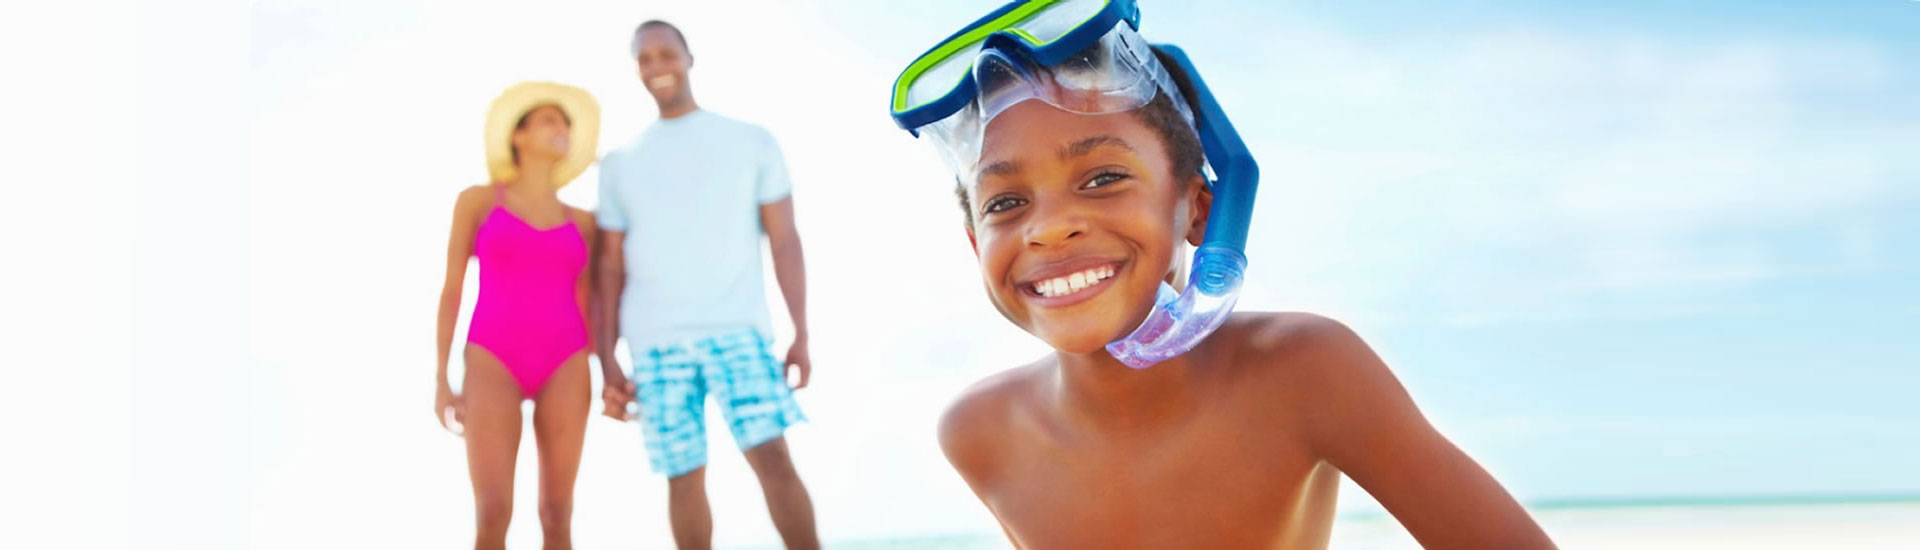 kids-on-the-beach-bananabeach-holiday-south-coast